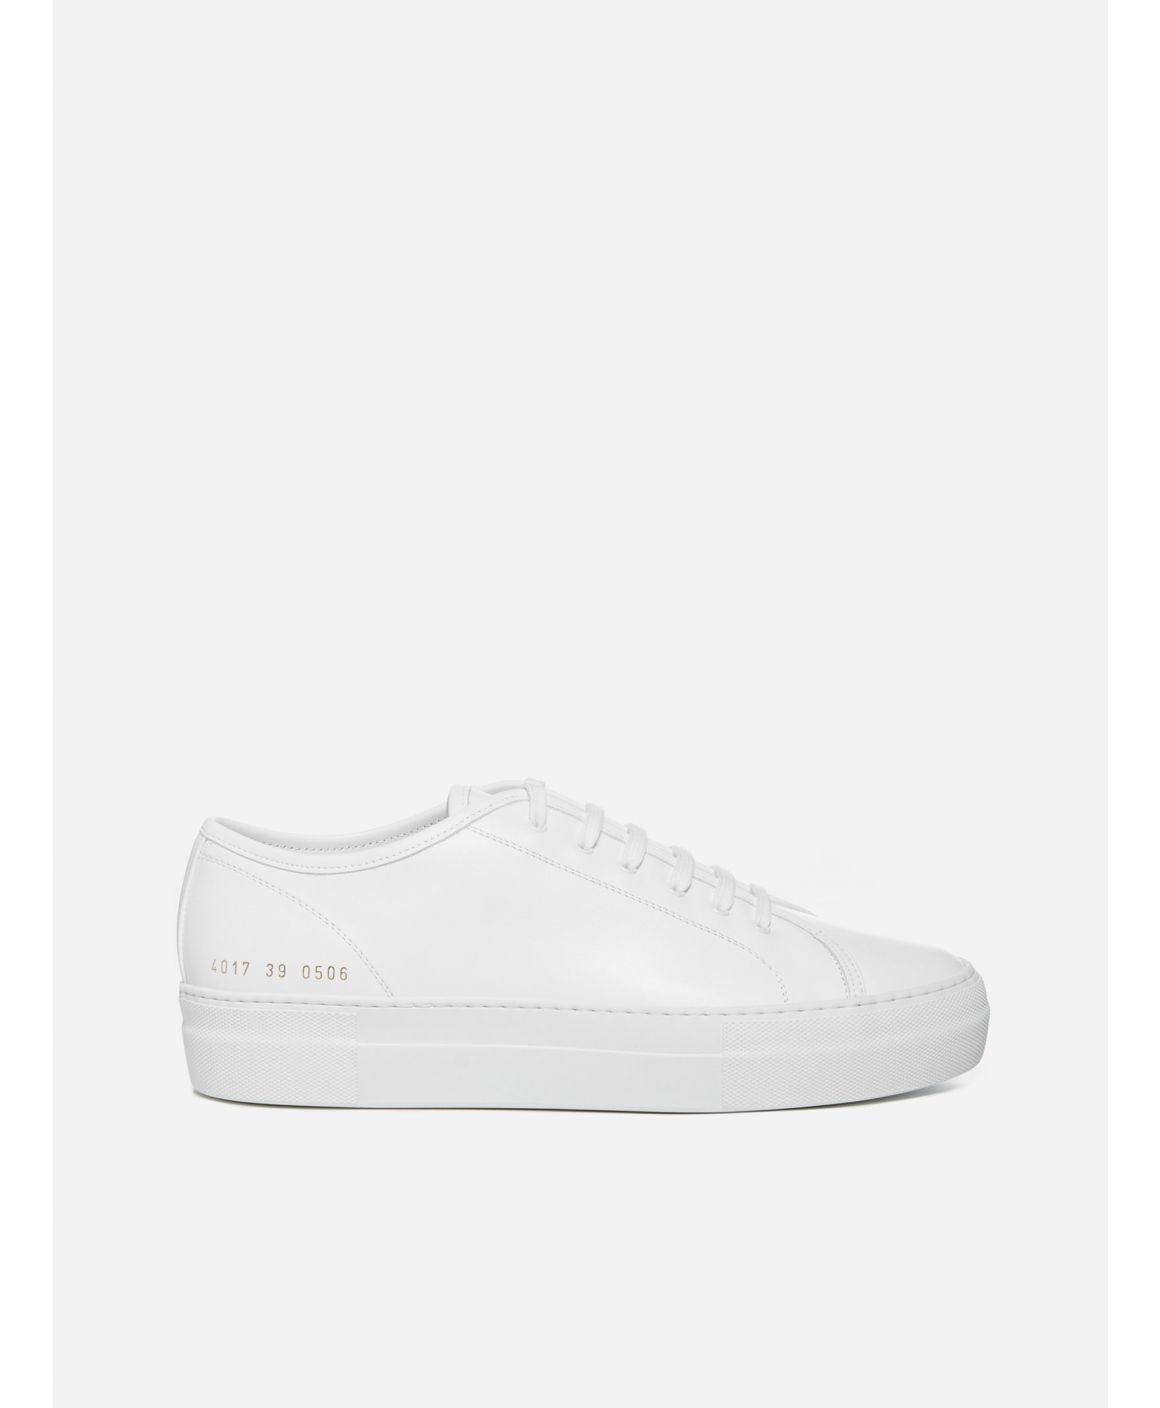 Tournament low-top leather sneakers